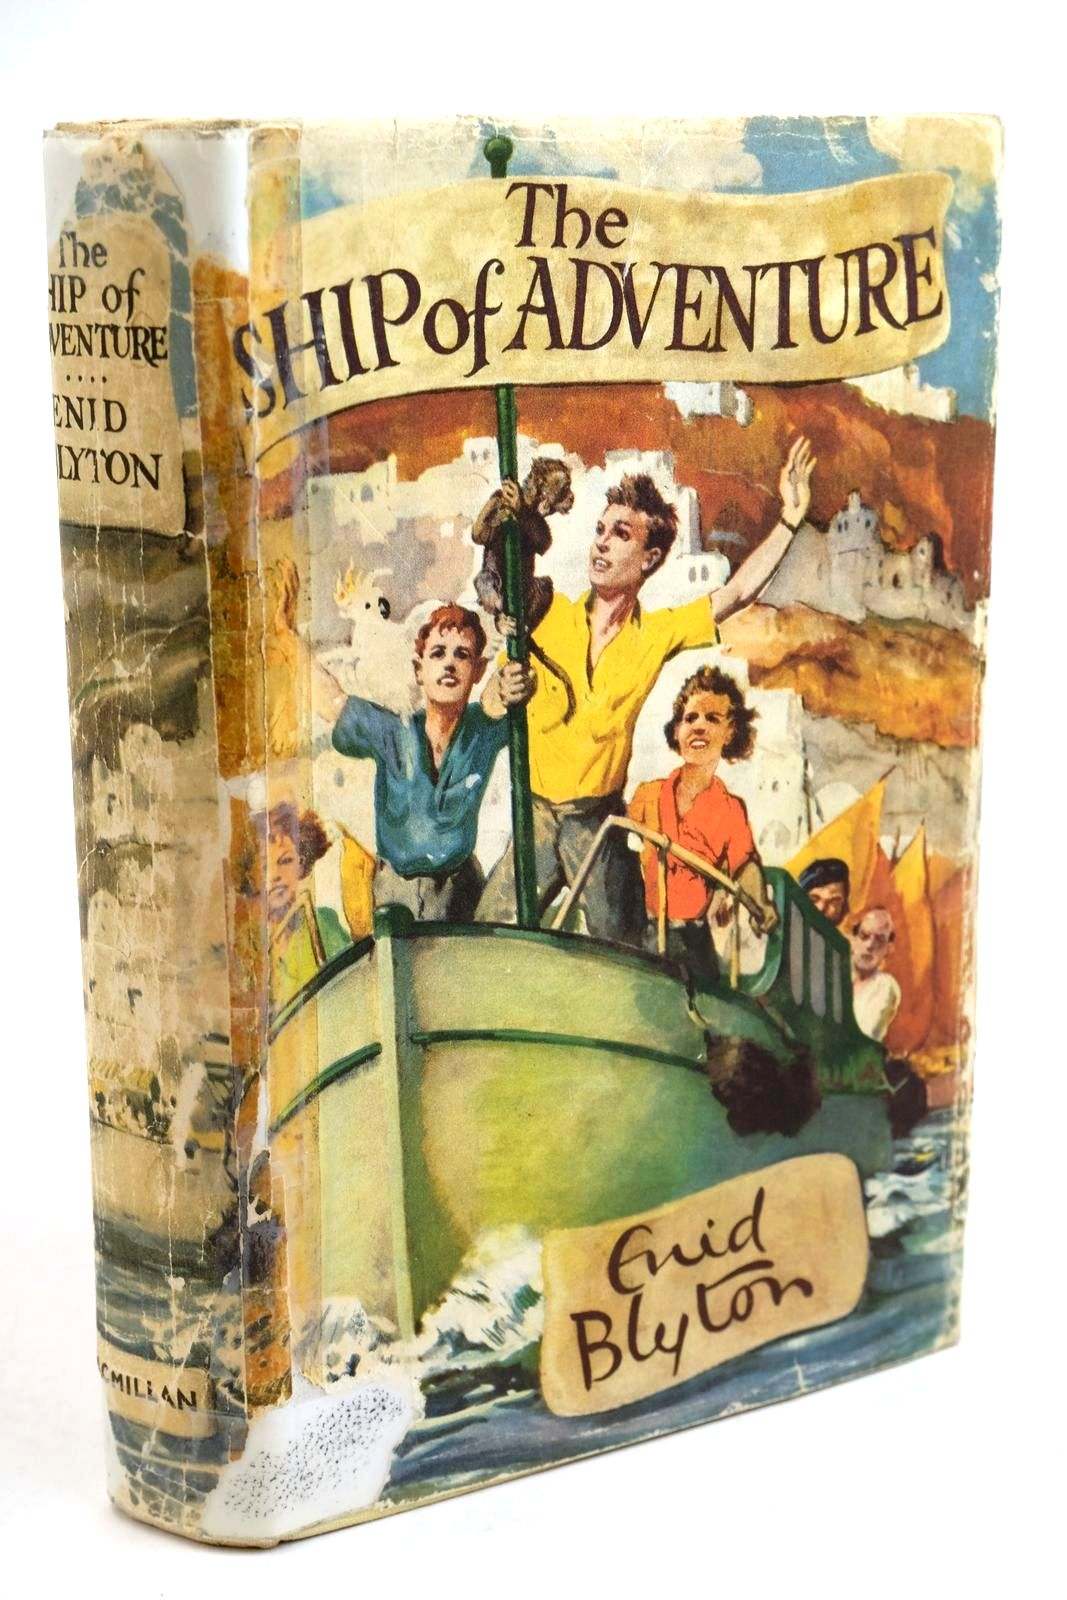 Photo of THE SHIP OF ADVENTURE written by Blyton, Enid illustrated by Tresilian, Stuart published by Macmillan & Co. Ltd. (STOCK CODE: 1321597)  for sale by Stella & Rose's Books